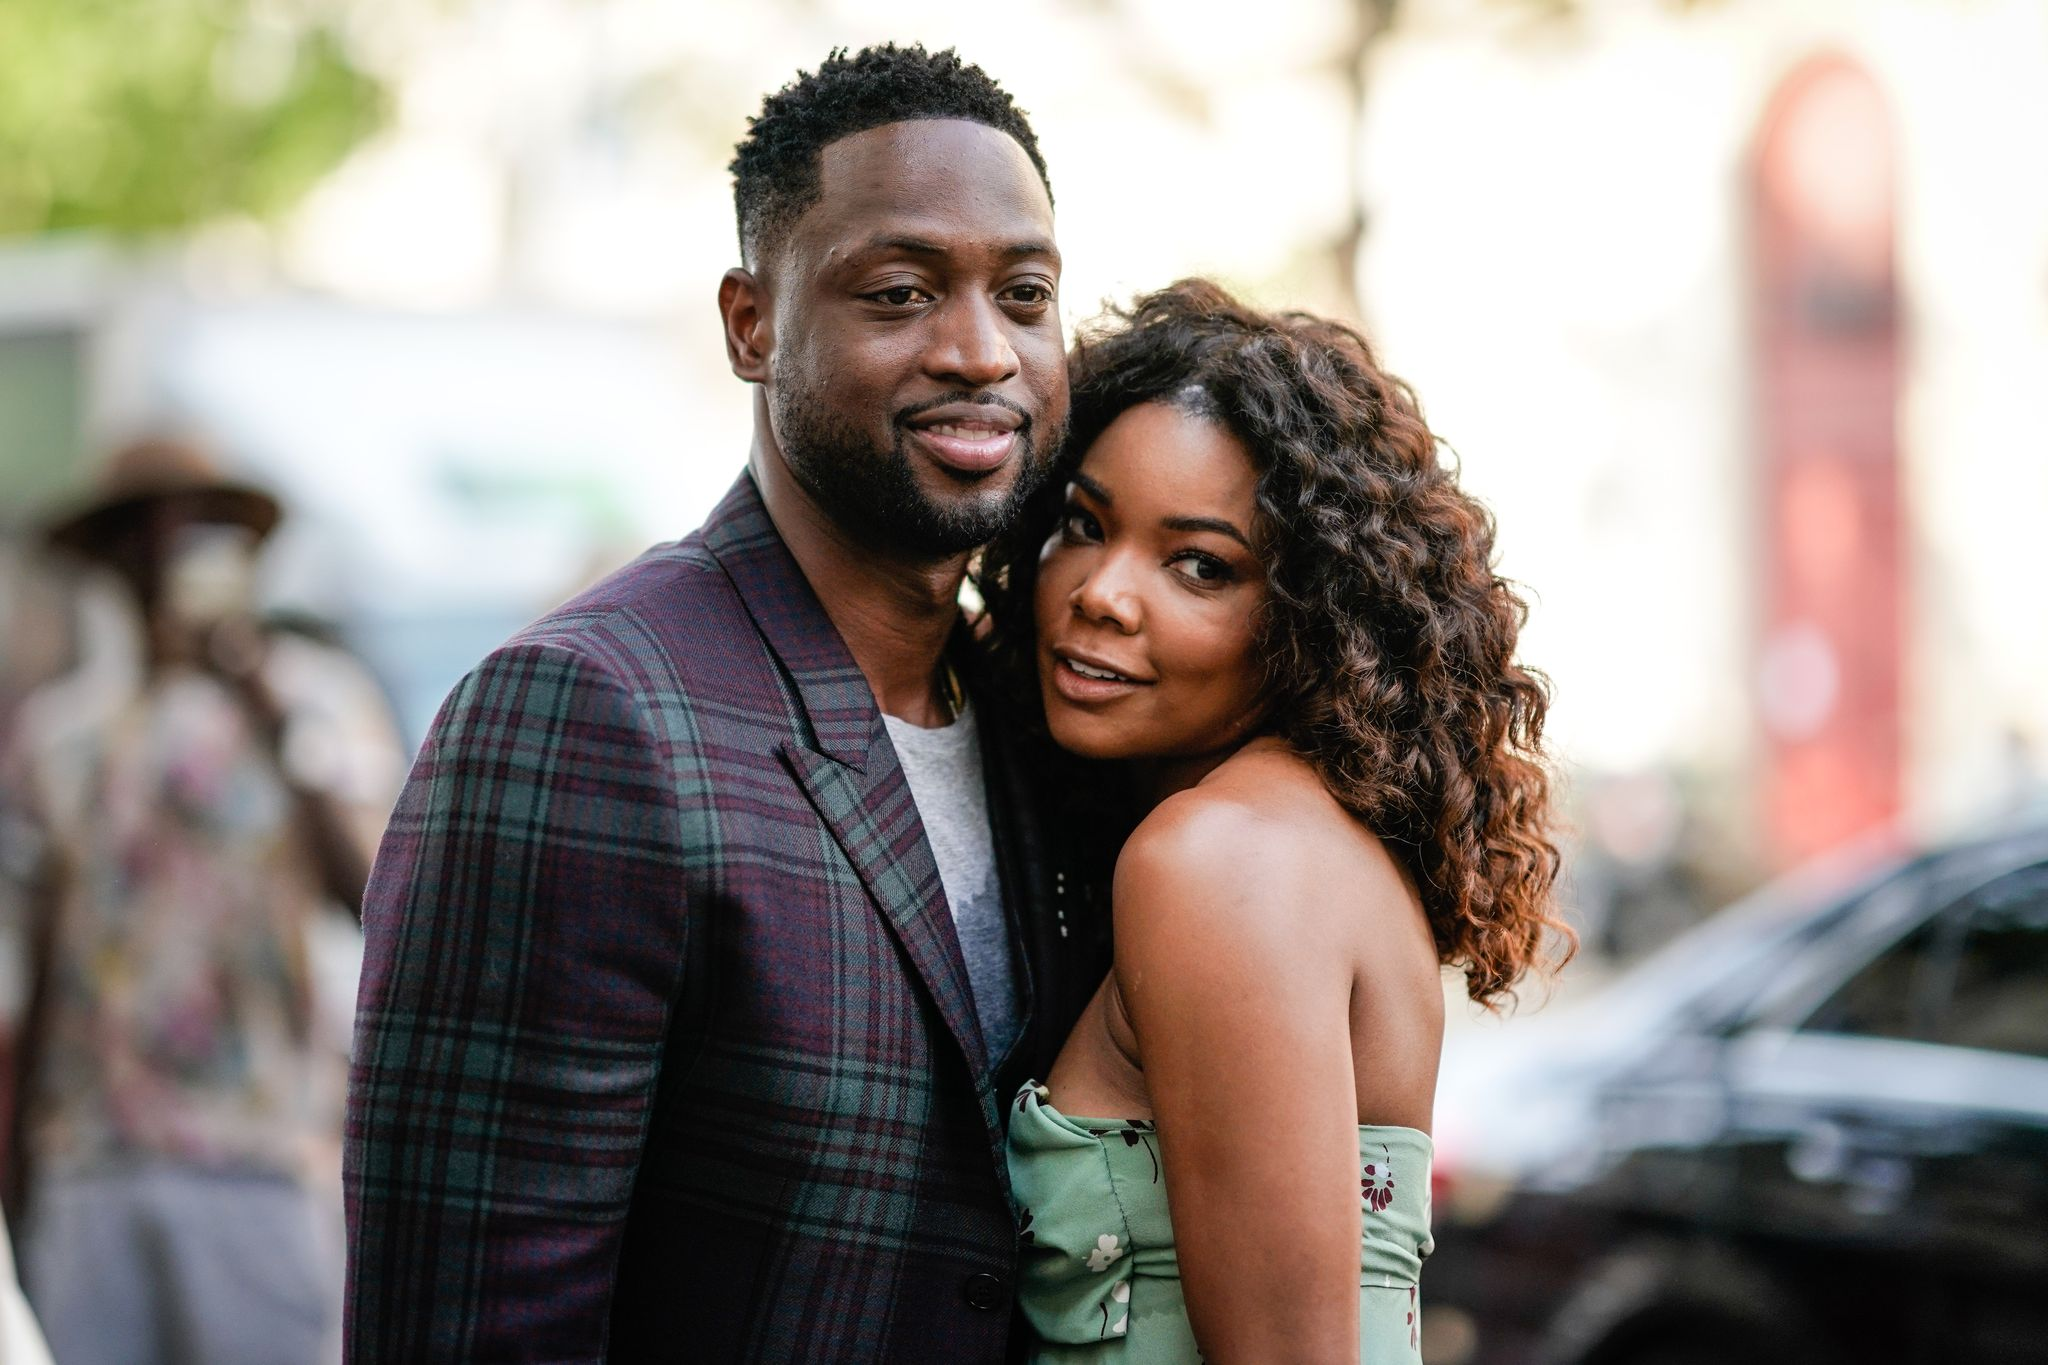 Dwyane Wade and wife Gabrielle Union at the Paris Fashion Week 2018 in June 21, 2017 in Paris, France | Source: Getty Images